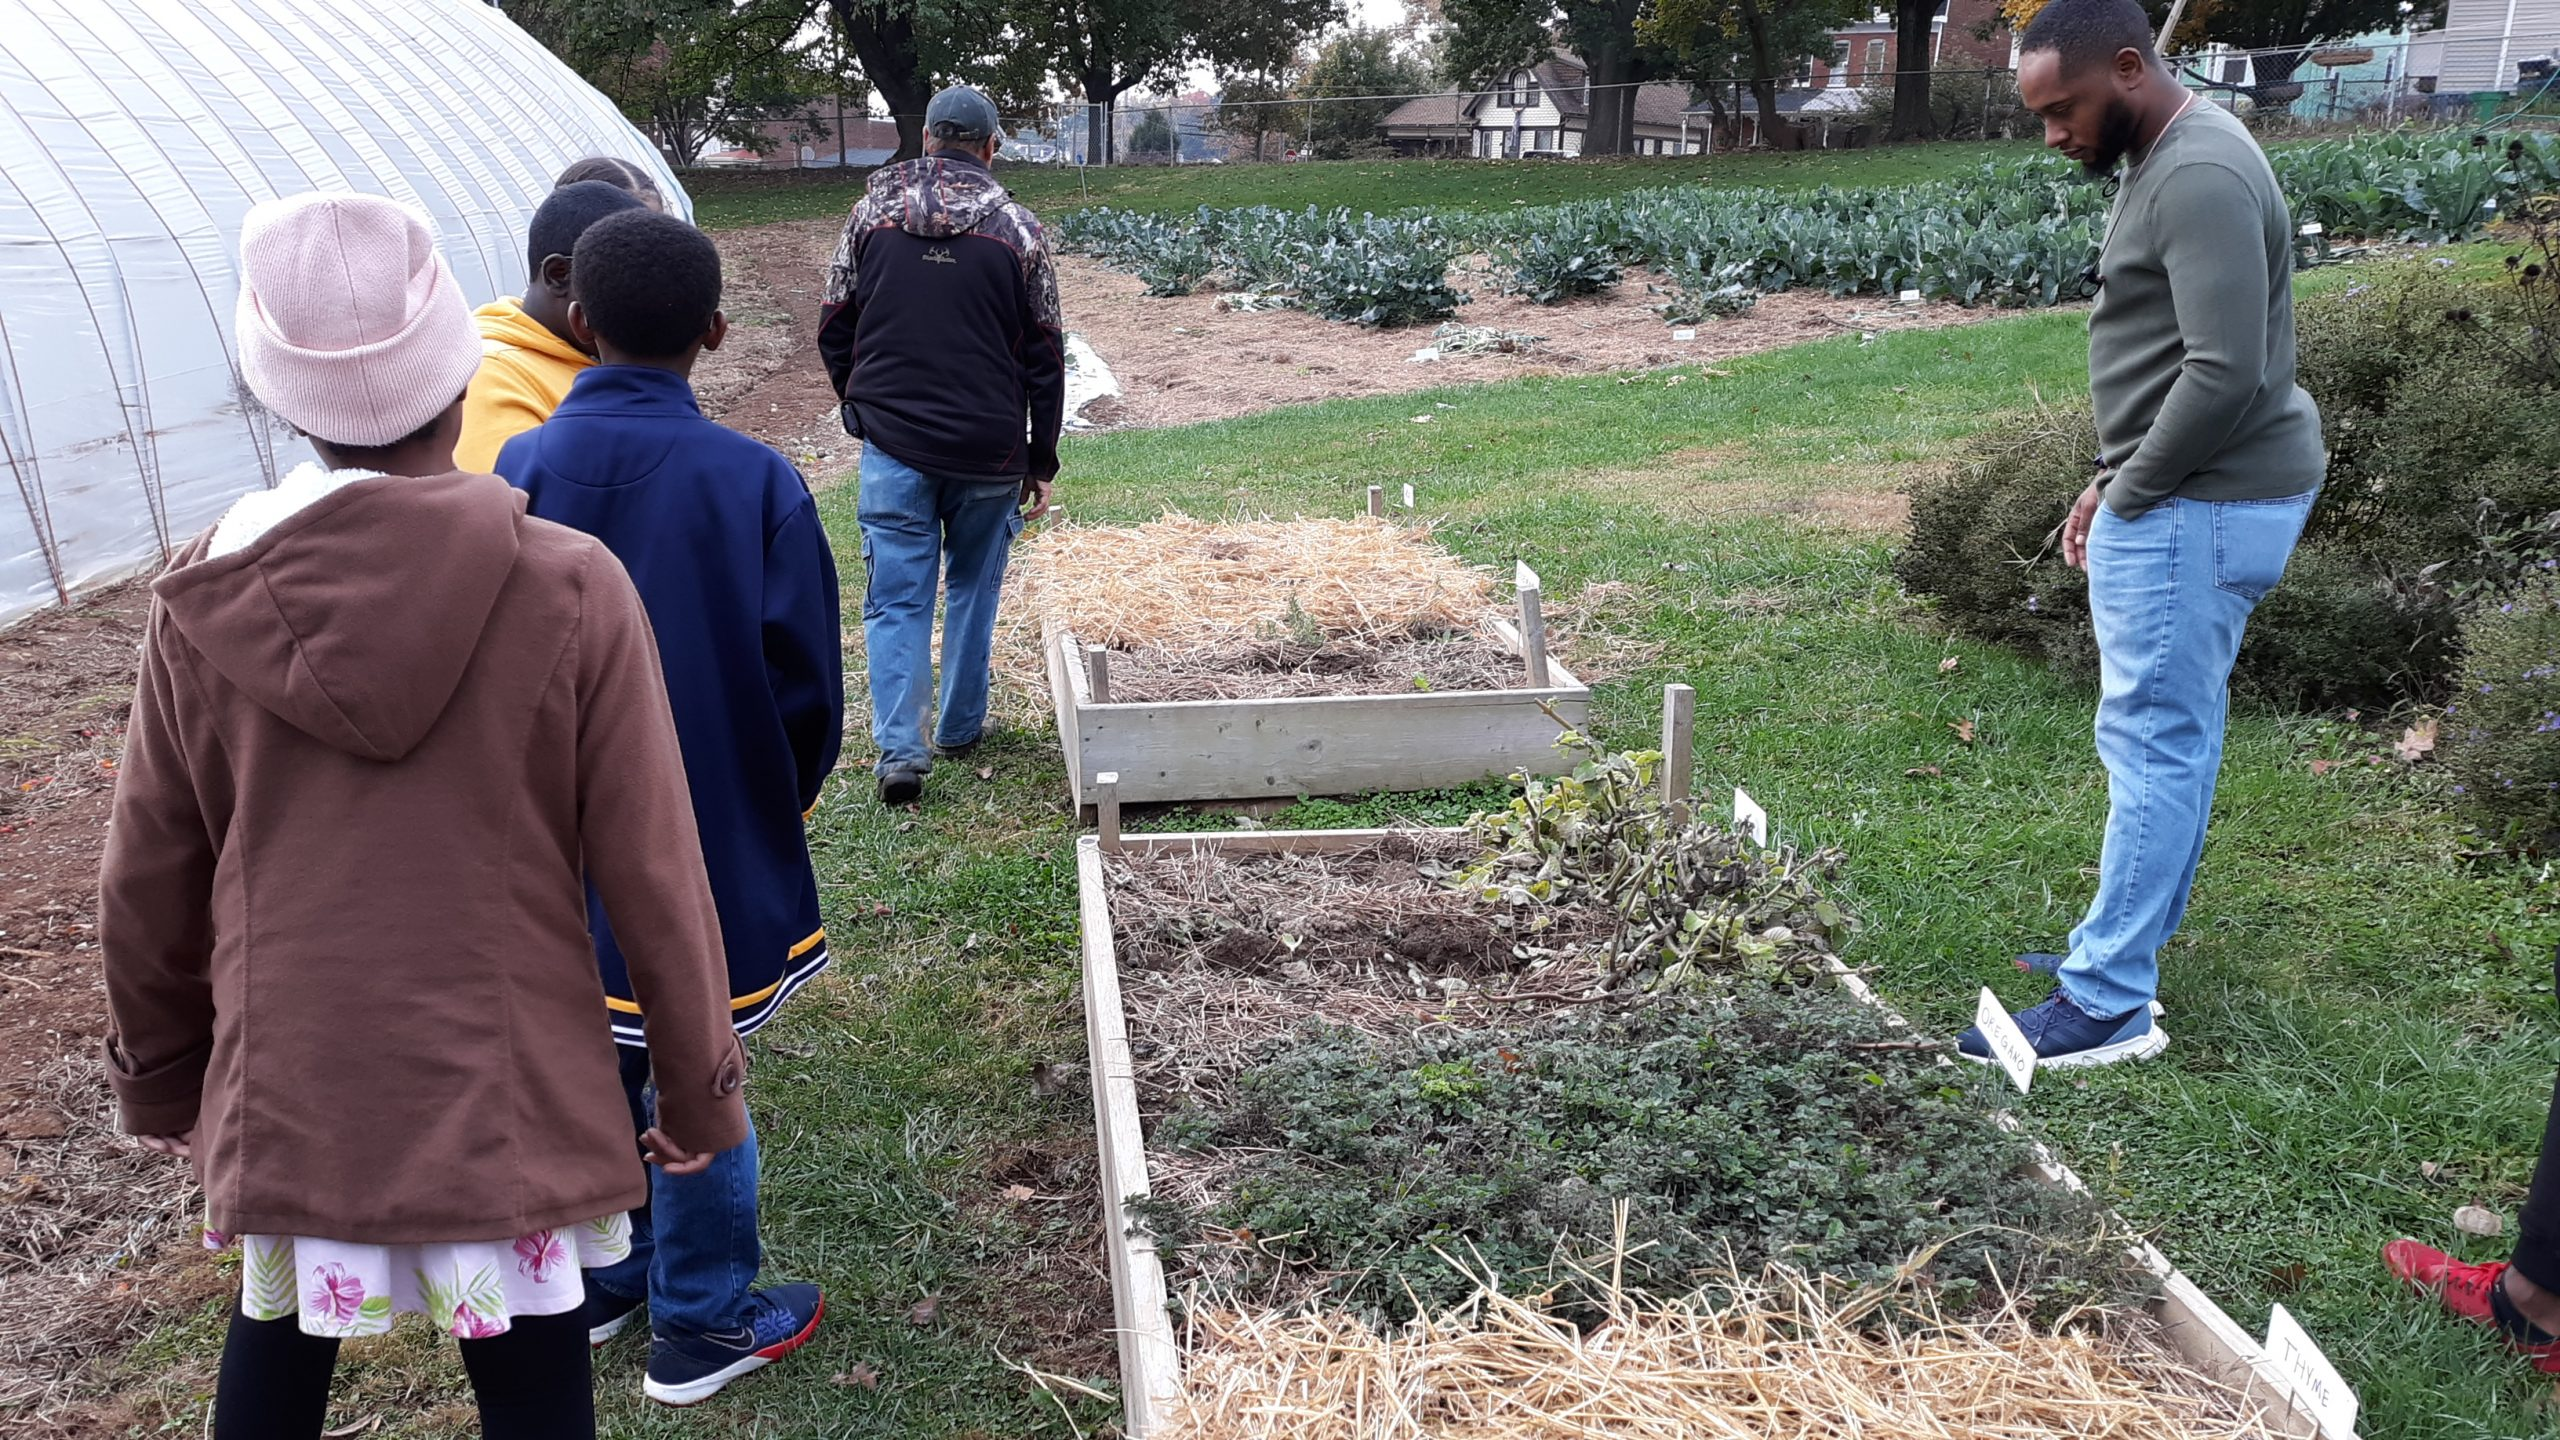 Learning about community farming